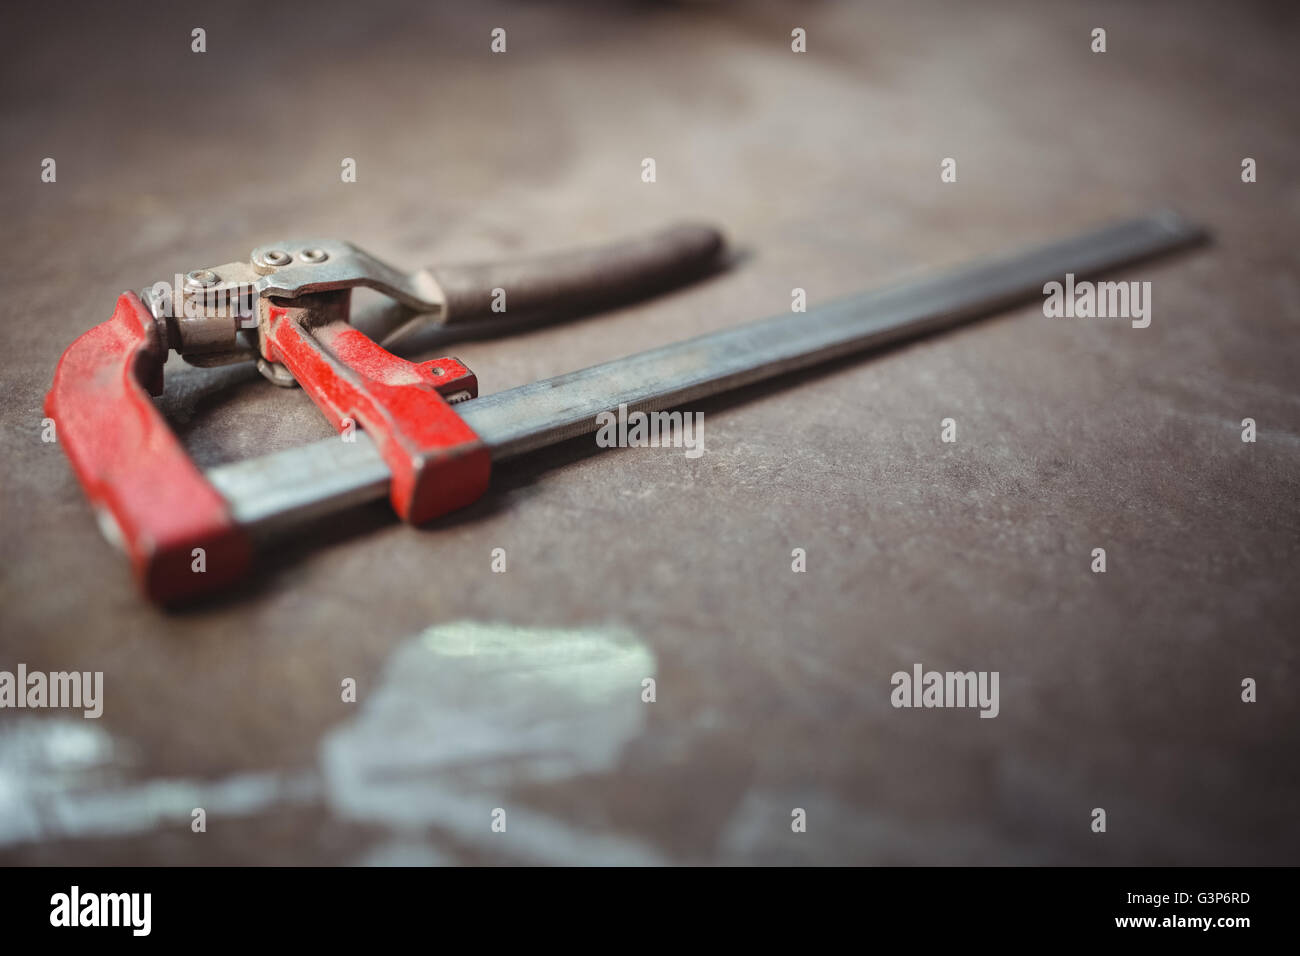 Close up of caliper on a table - Stock Image